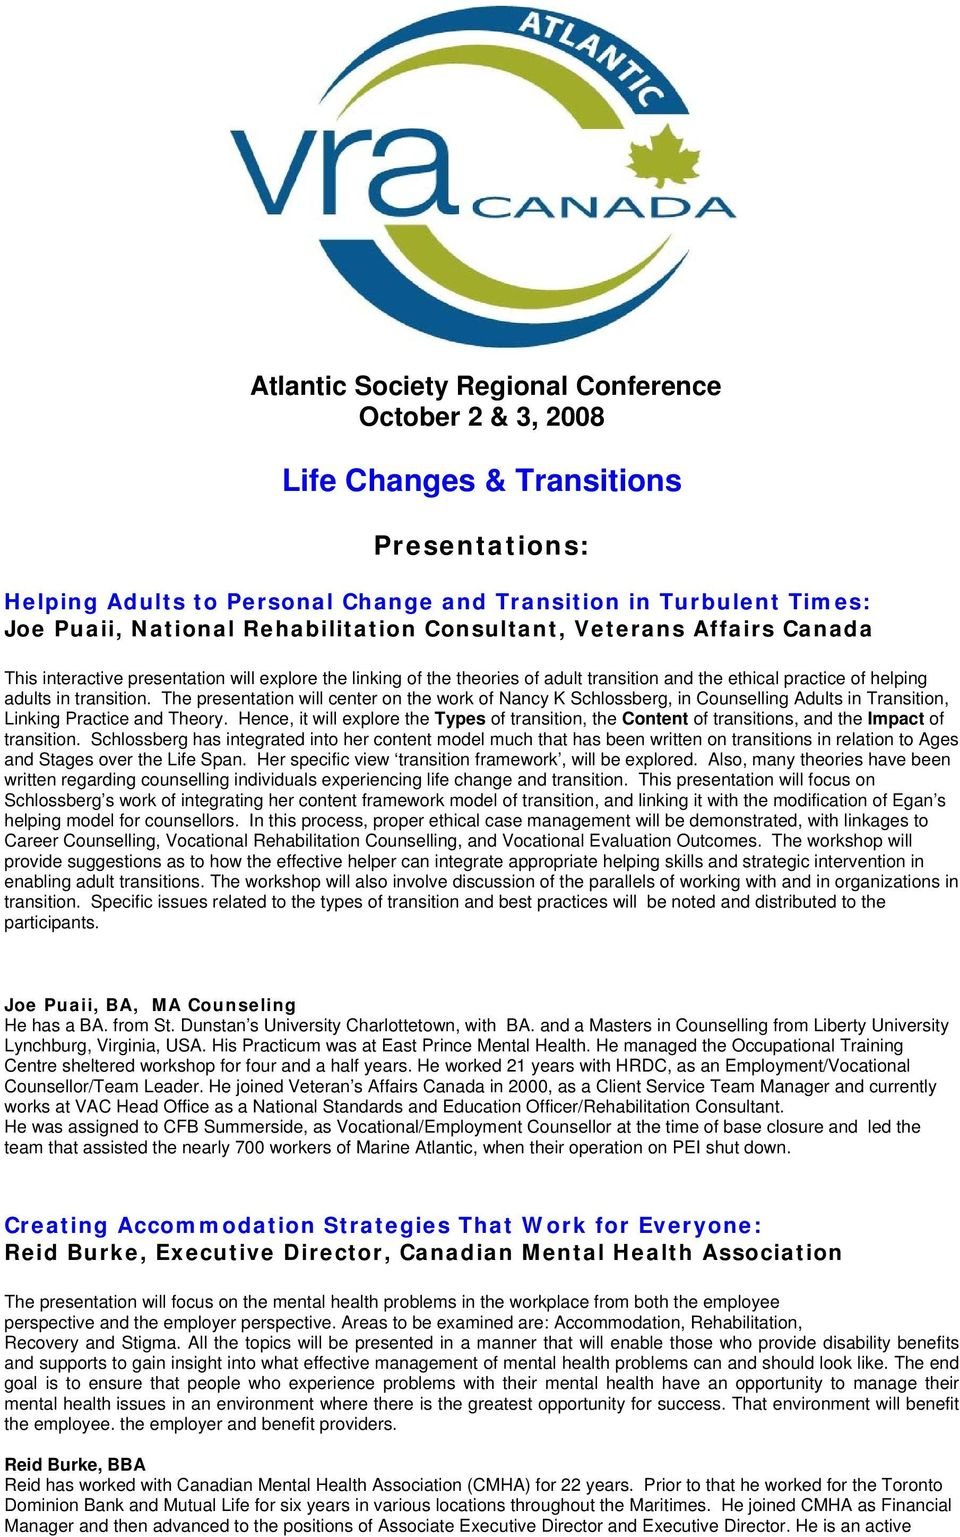 The presentation will center on the work of Nancy K Schlossberg, in Counselling Adults in Transition, Linking Practice and Theory.